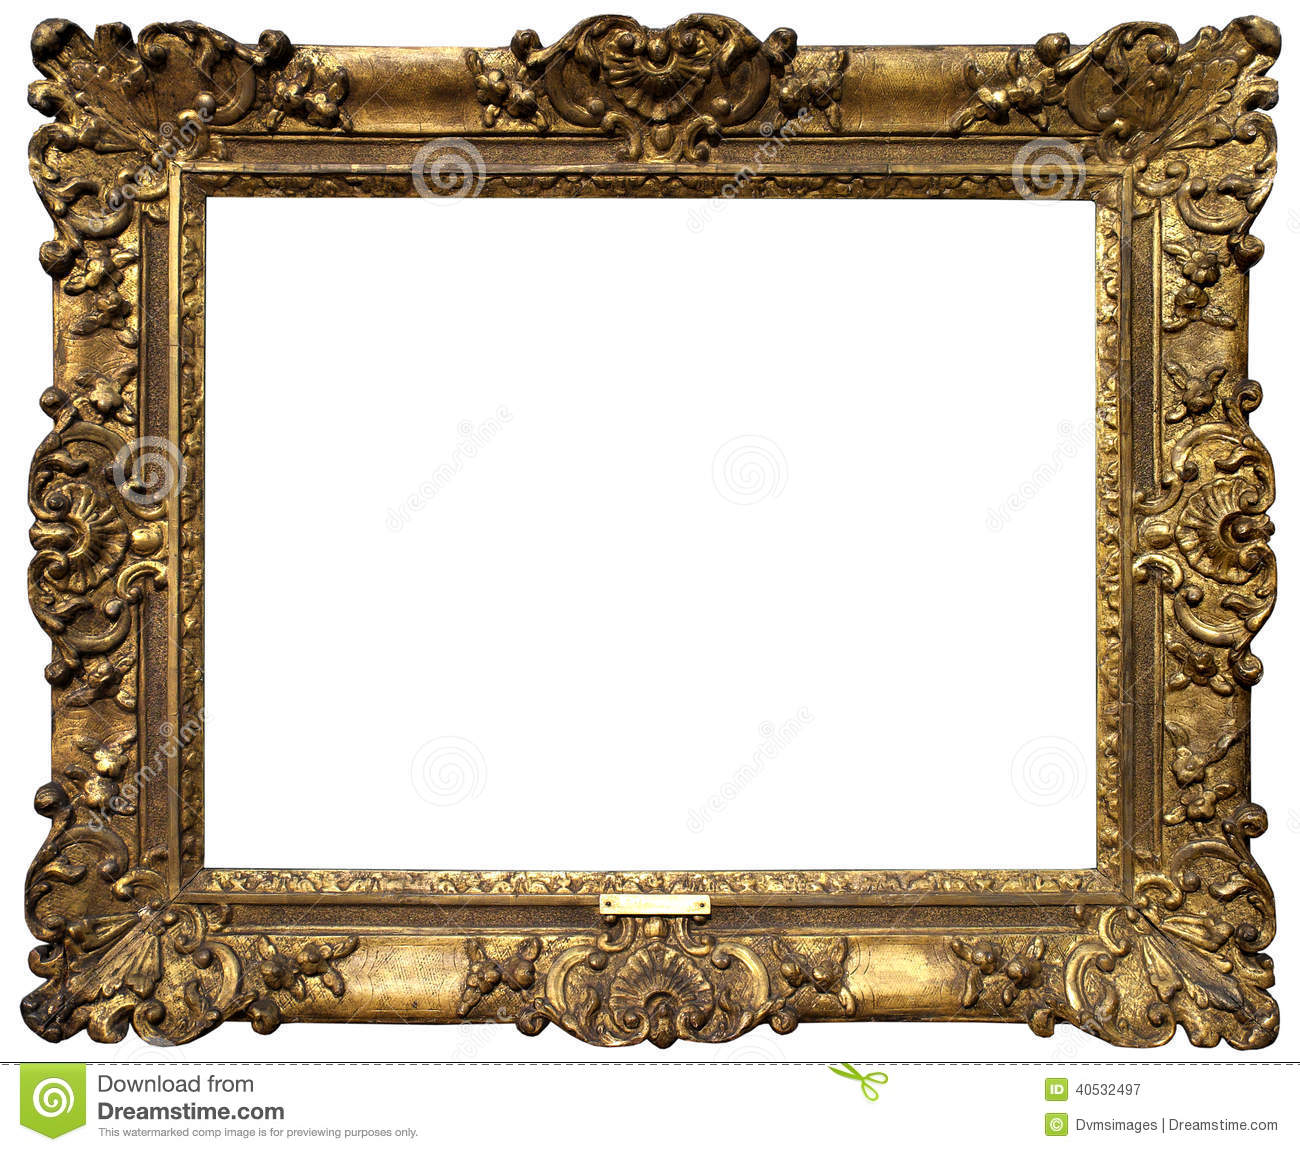 Gold antique baroque frame isolated on white background.